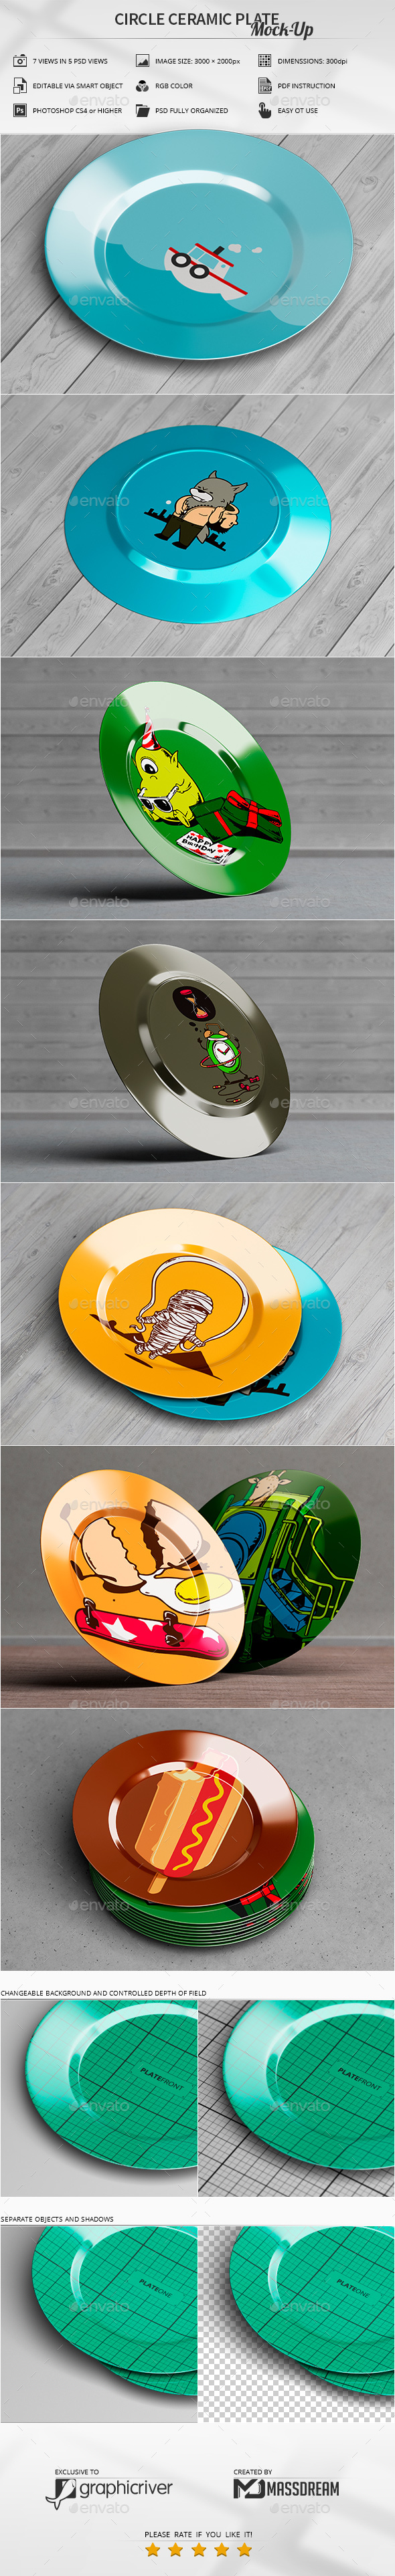 GraphicRiver Circle Ceramic Plate Mock-Up 20492269